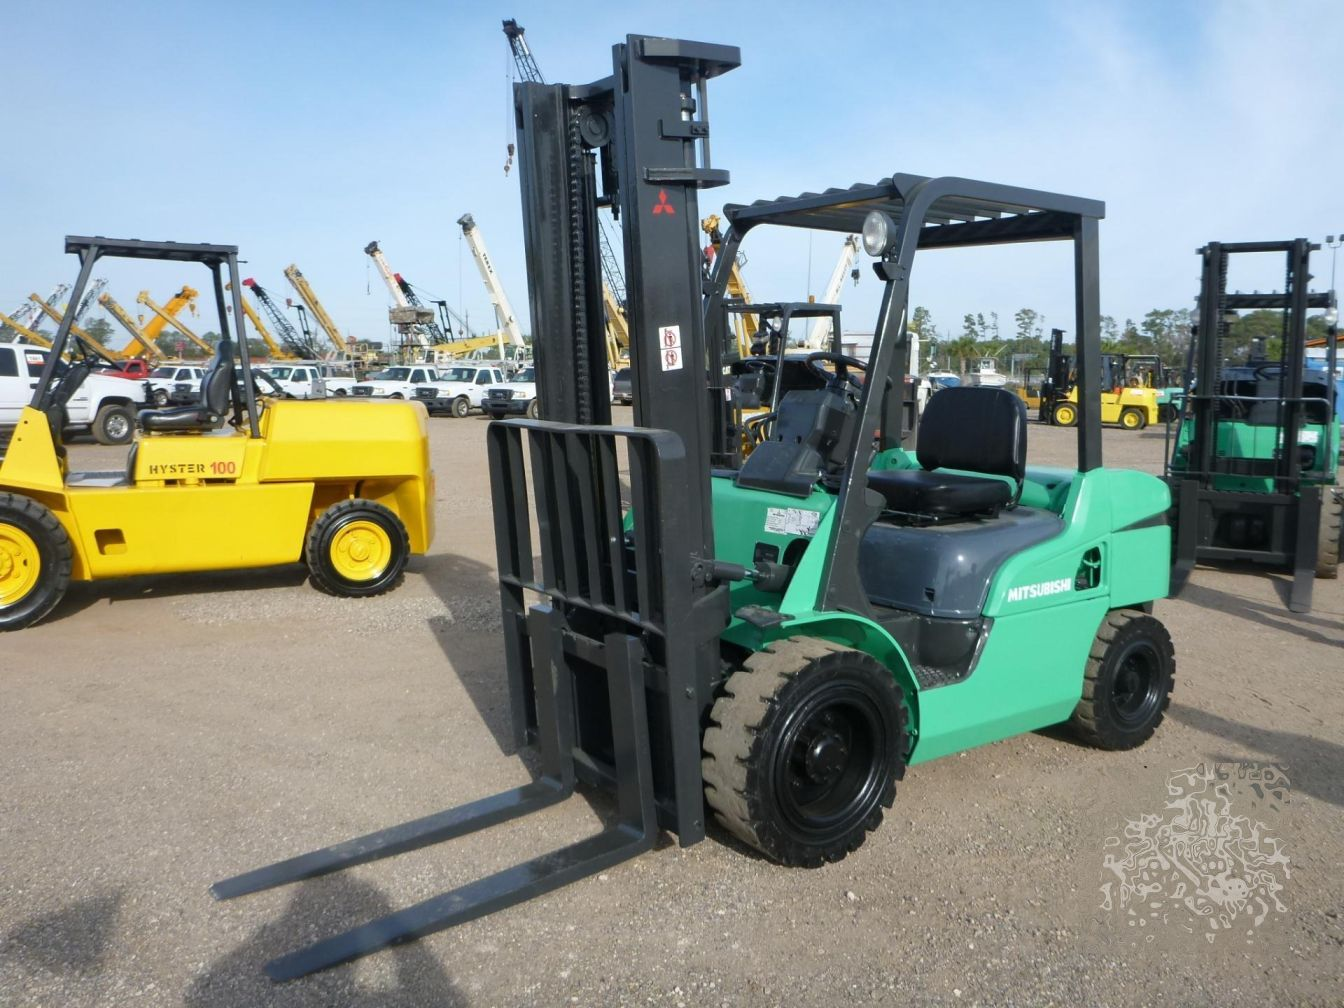 sales engine forklift hot quality mitsubishi trucks product diesel high buy detail performance promotional